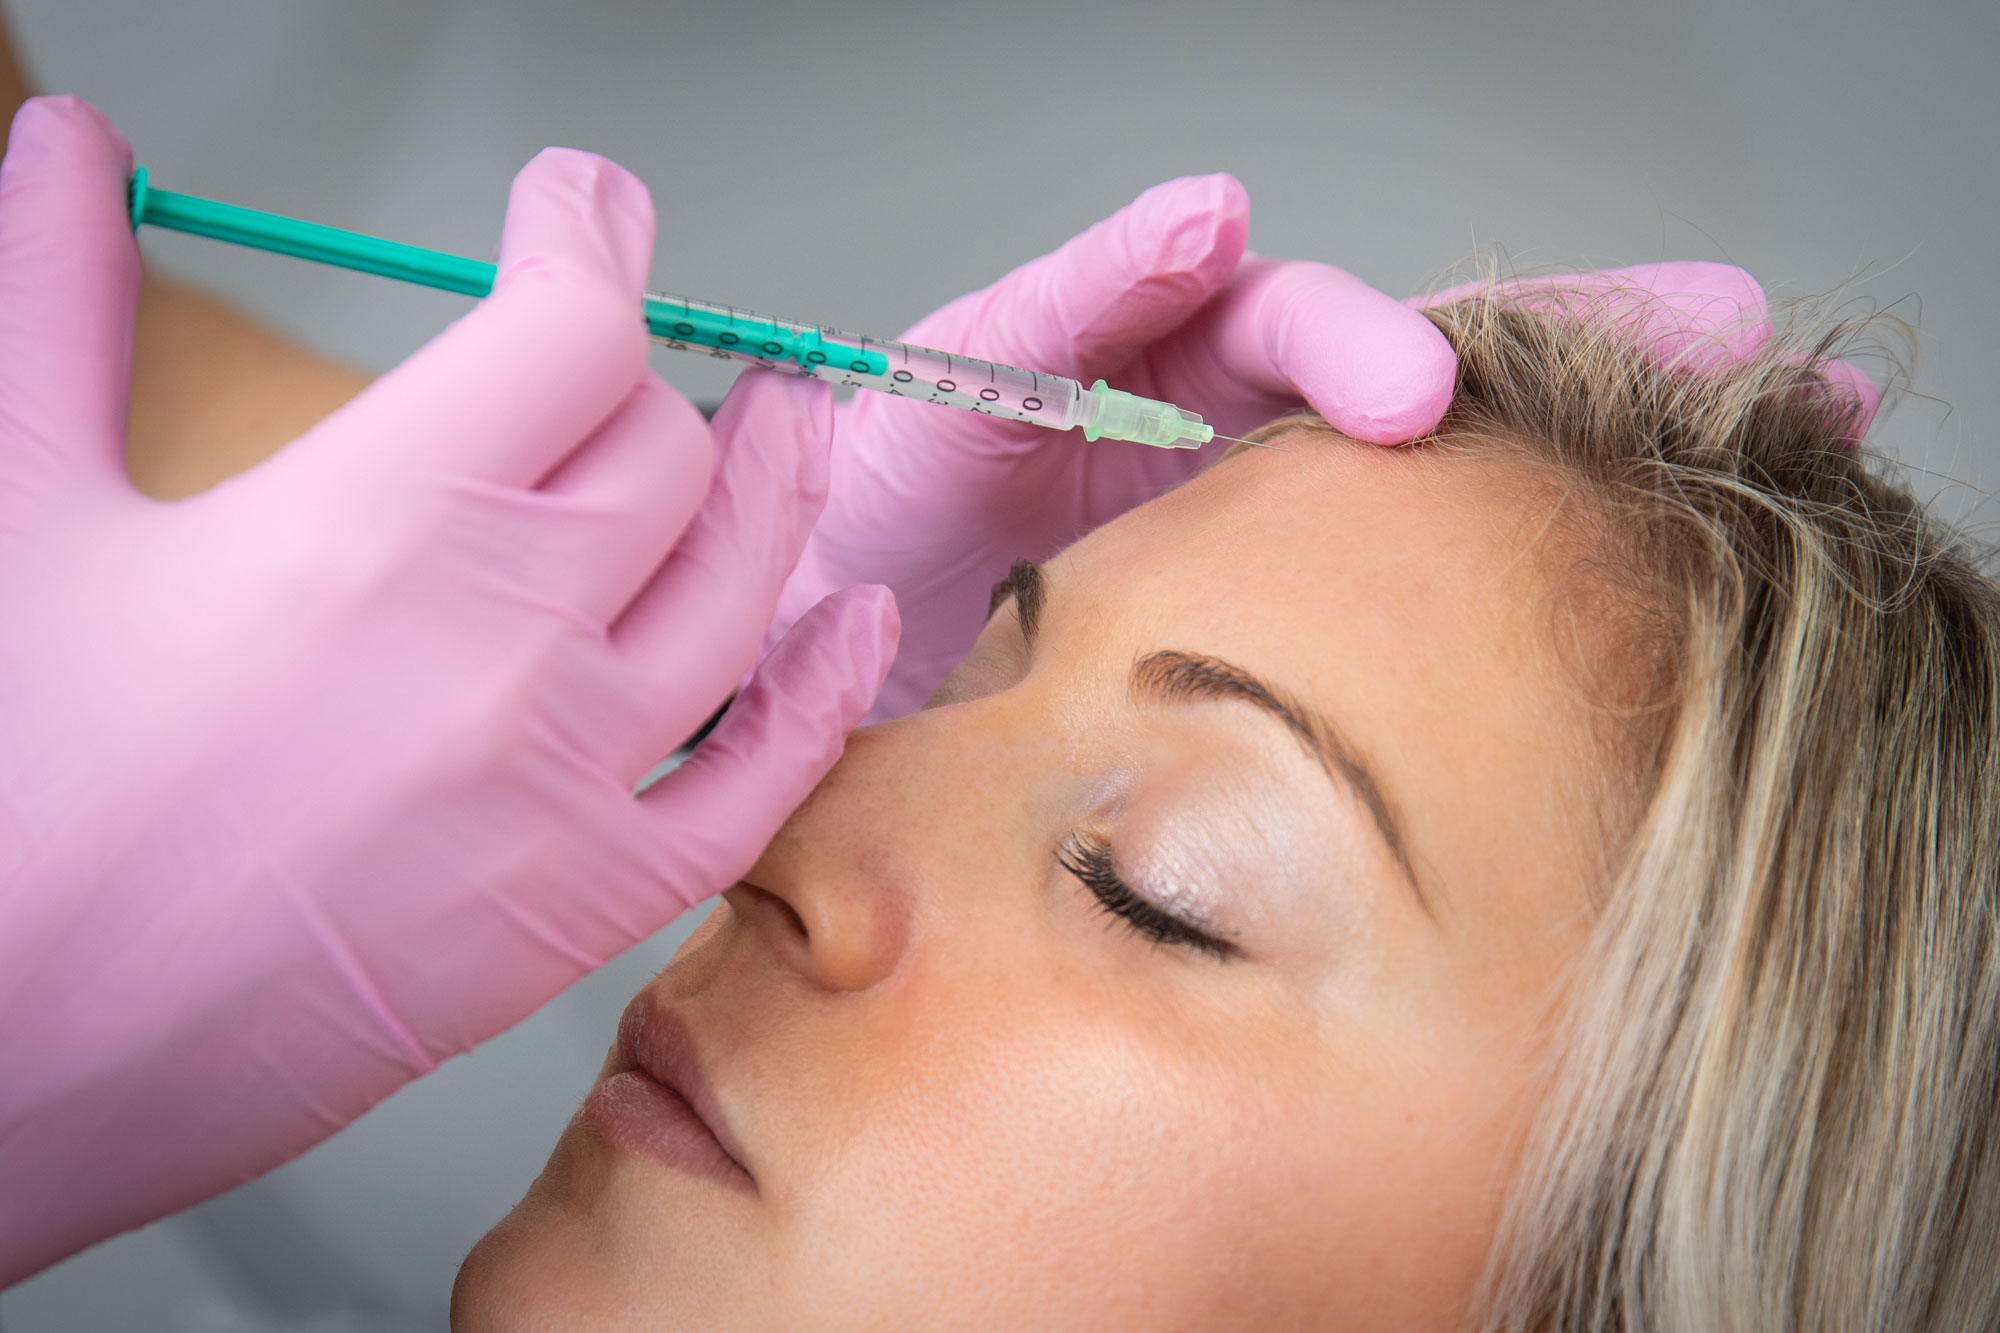 How To Get Rid Of Frown Lines Between Eyebrows Without Botox